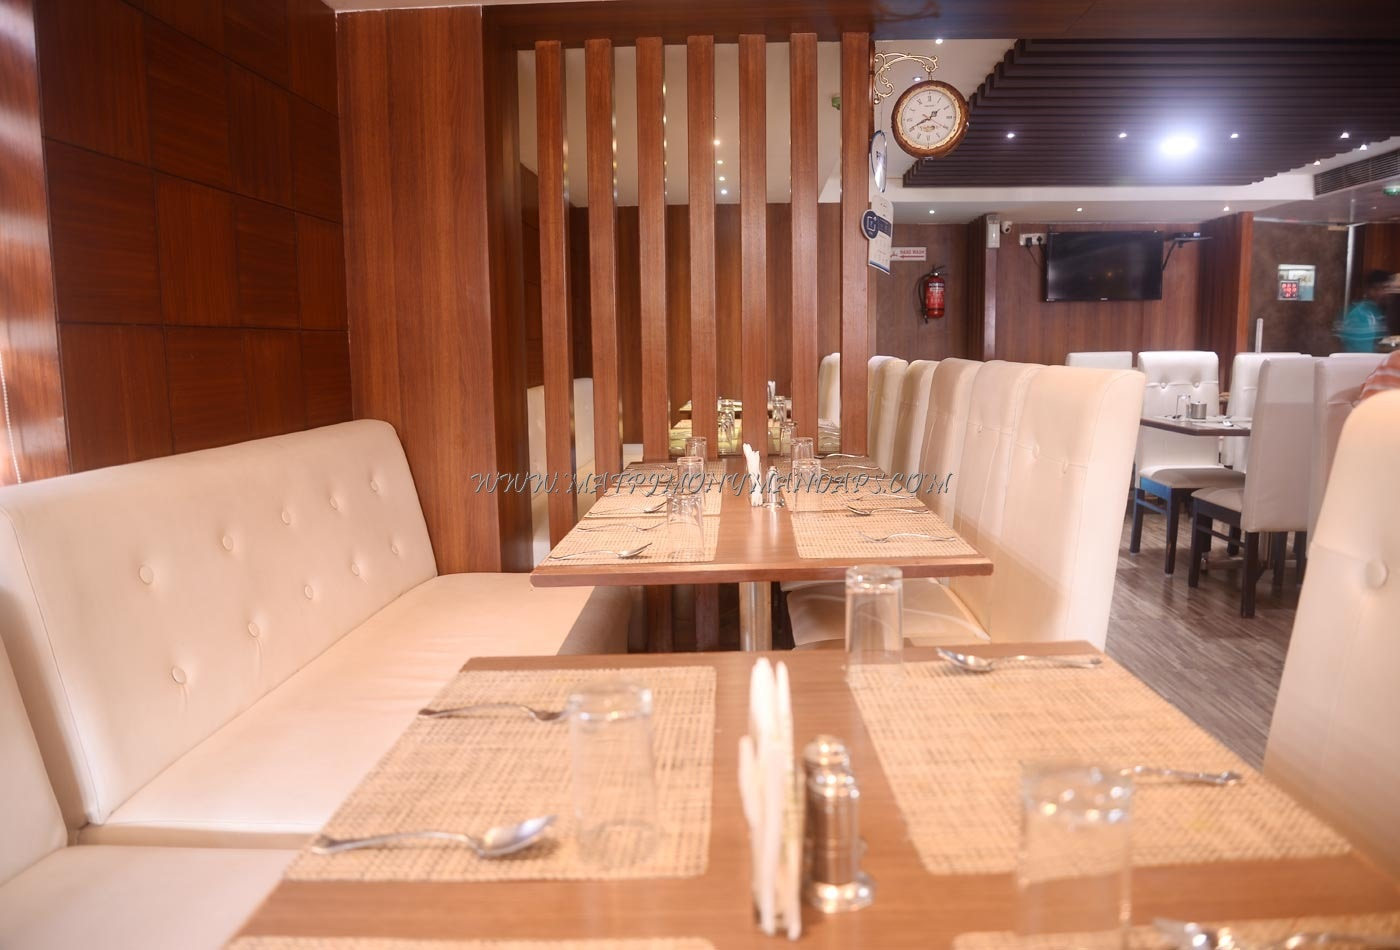 Find the availability of the Sai Bala Grand (A/C) in Pallavaram, Chennai and avail special offers